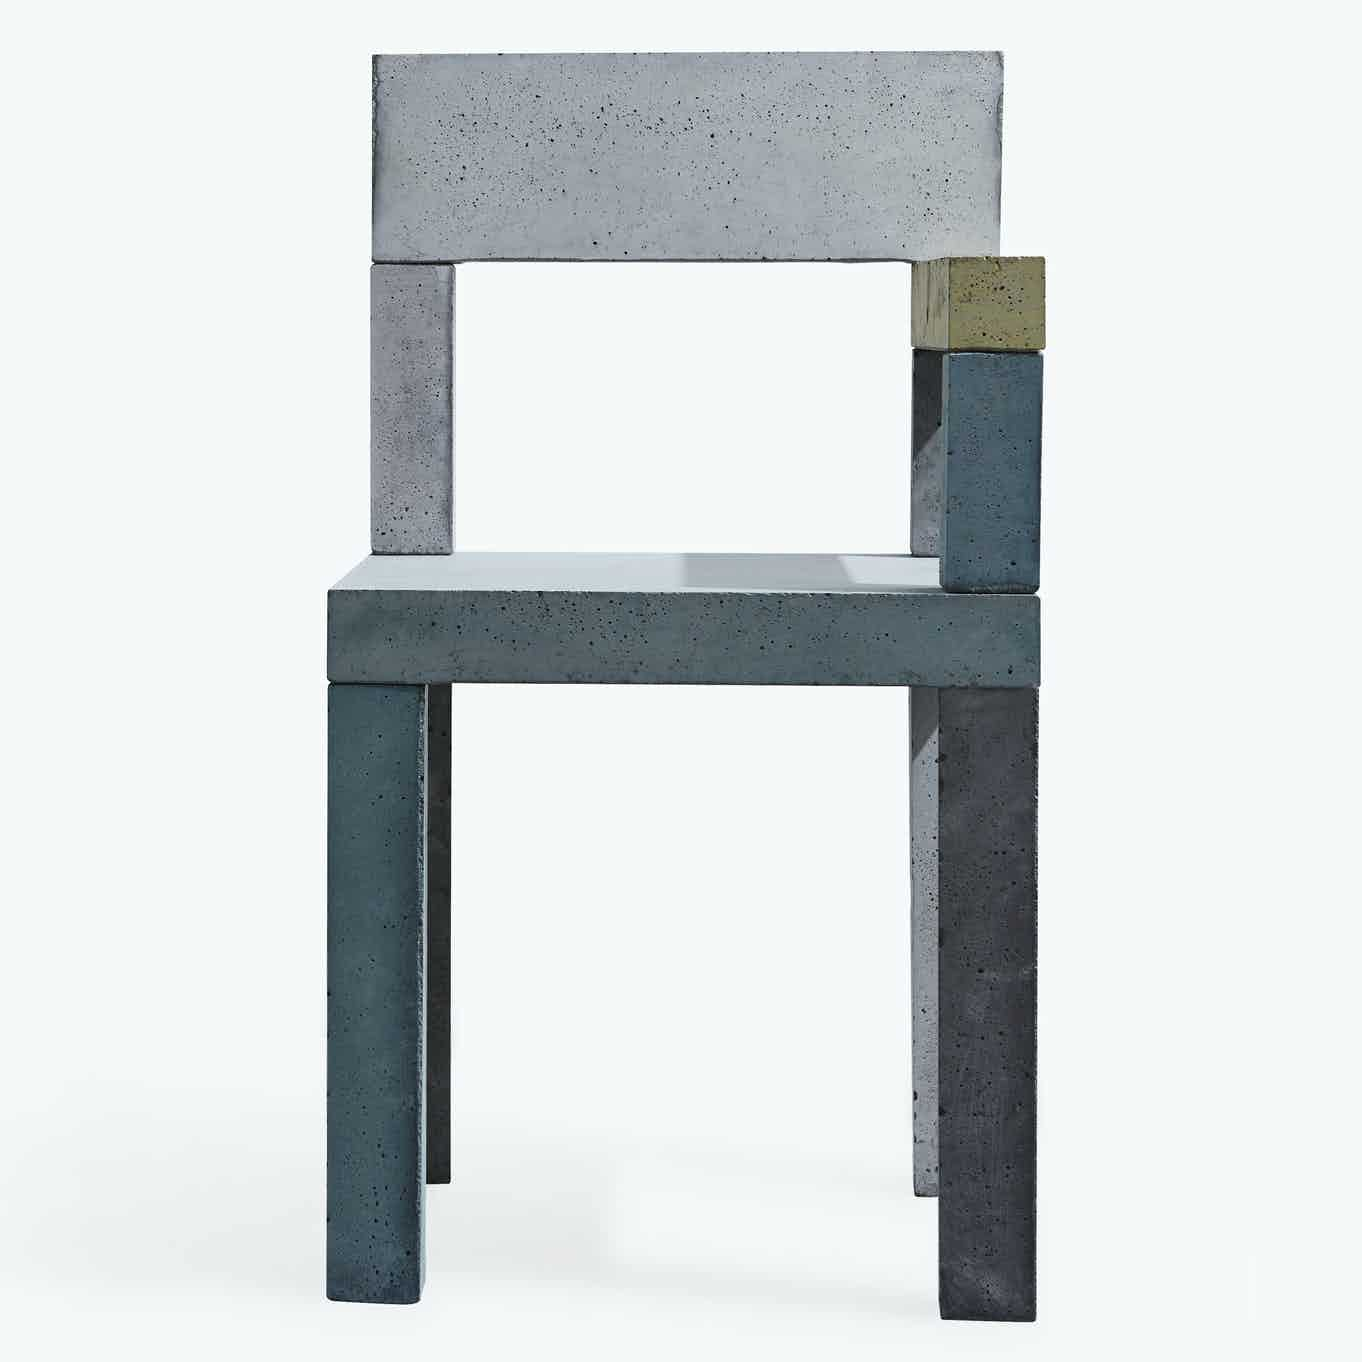 New works furniture untitled concrete chair front haute living